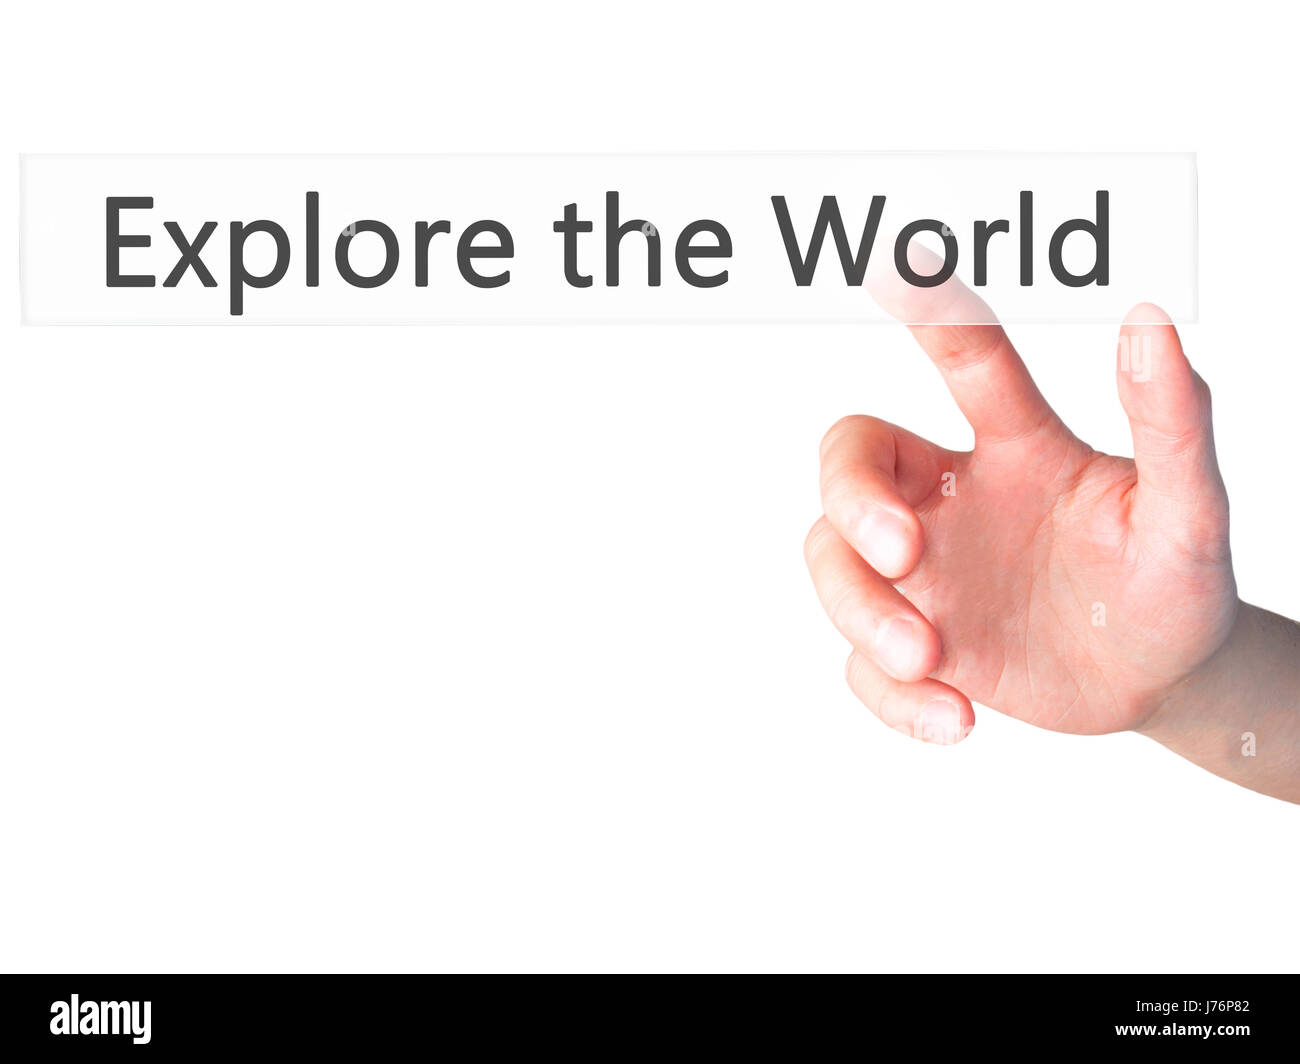 Explore the World - Hand pressing a button on blurred background concept . Business, technology, internet concept. - Stock Image